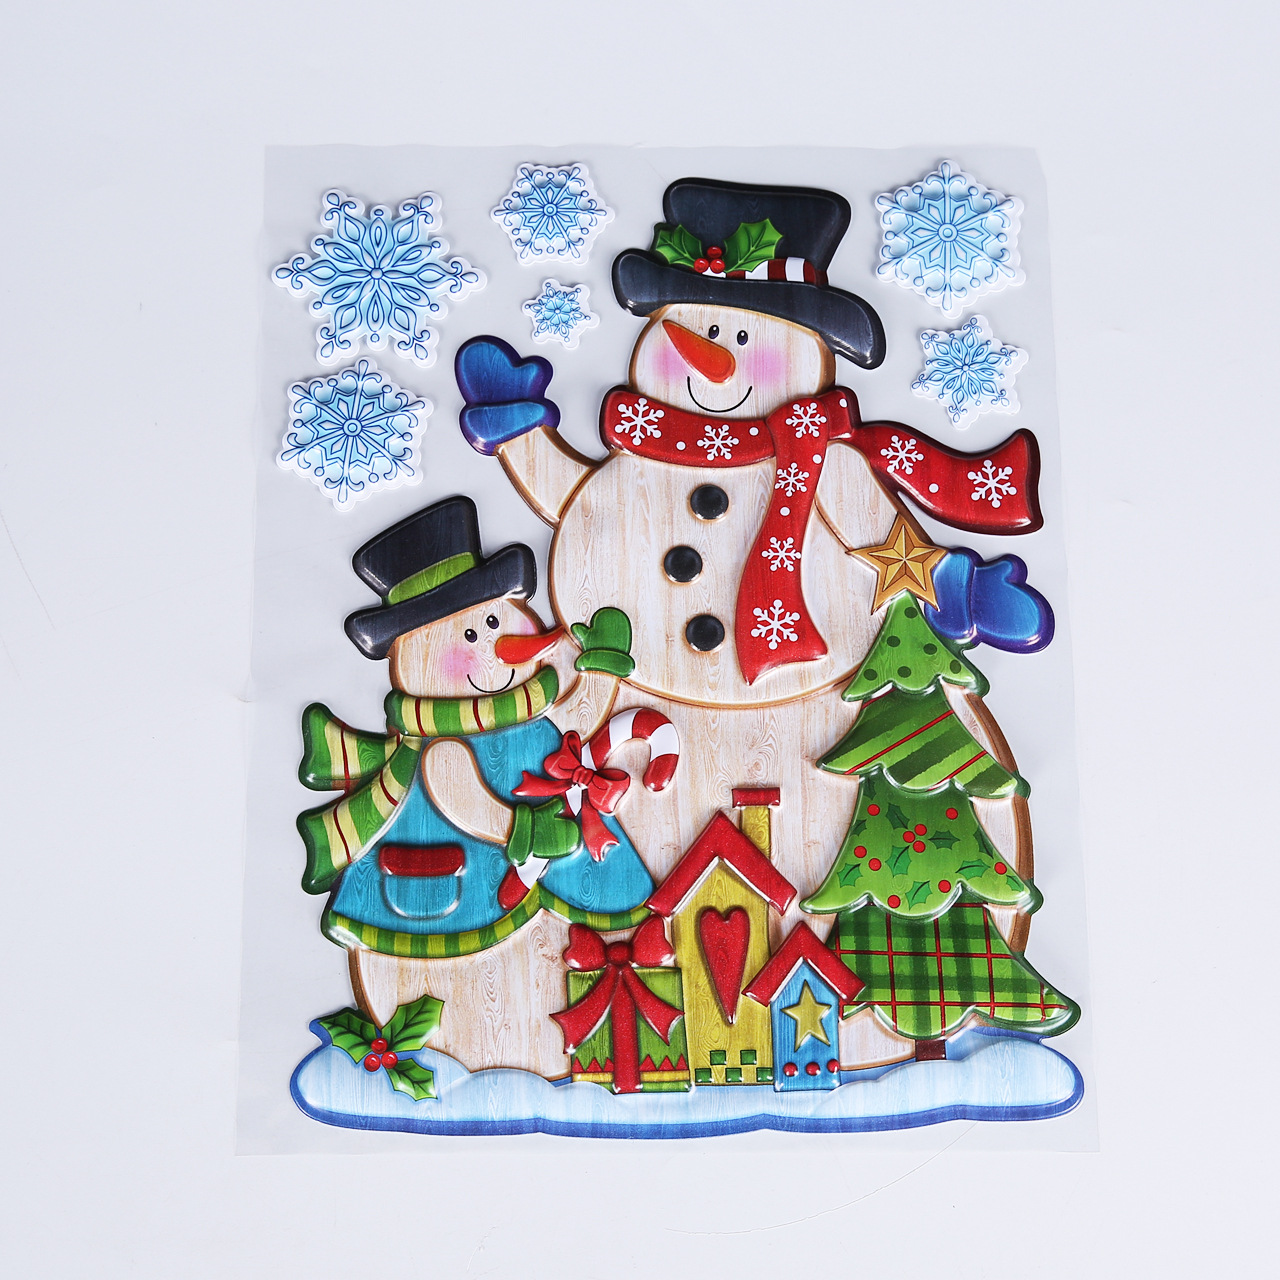 Pop up Christmas Sticker For Window Home Decorations